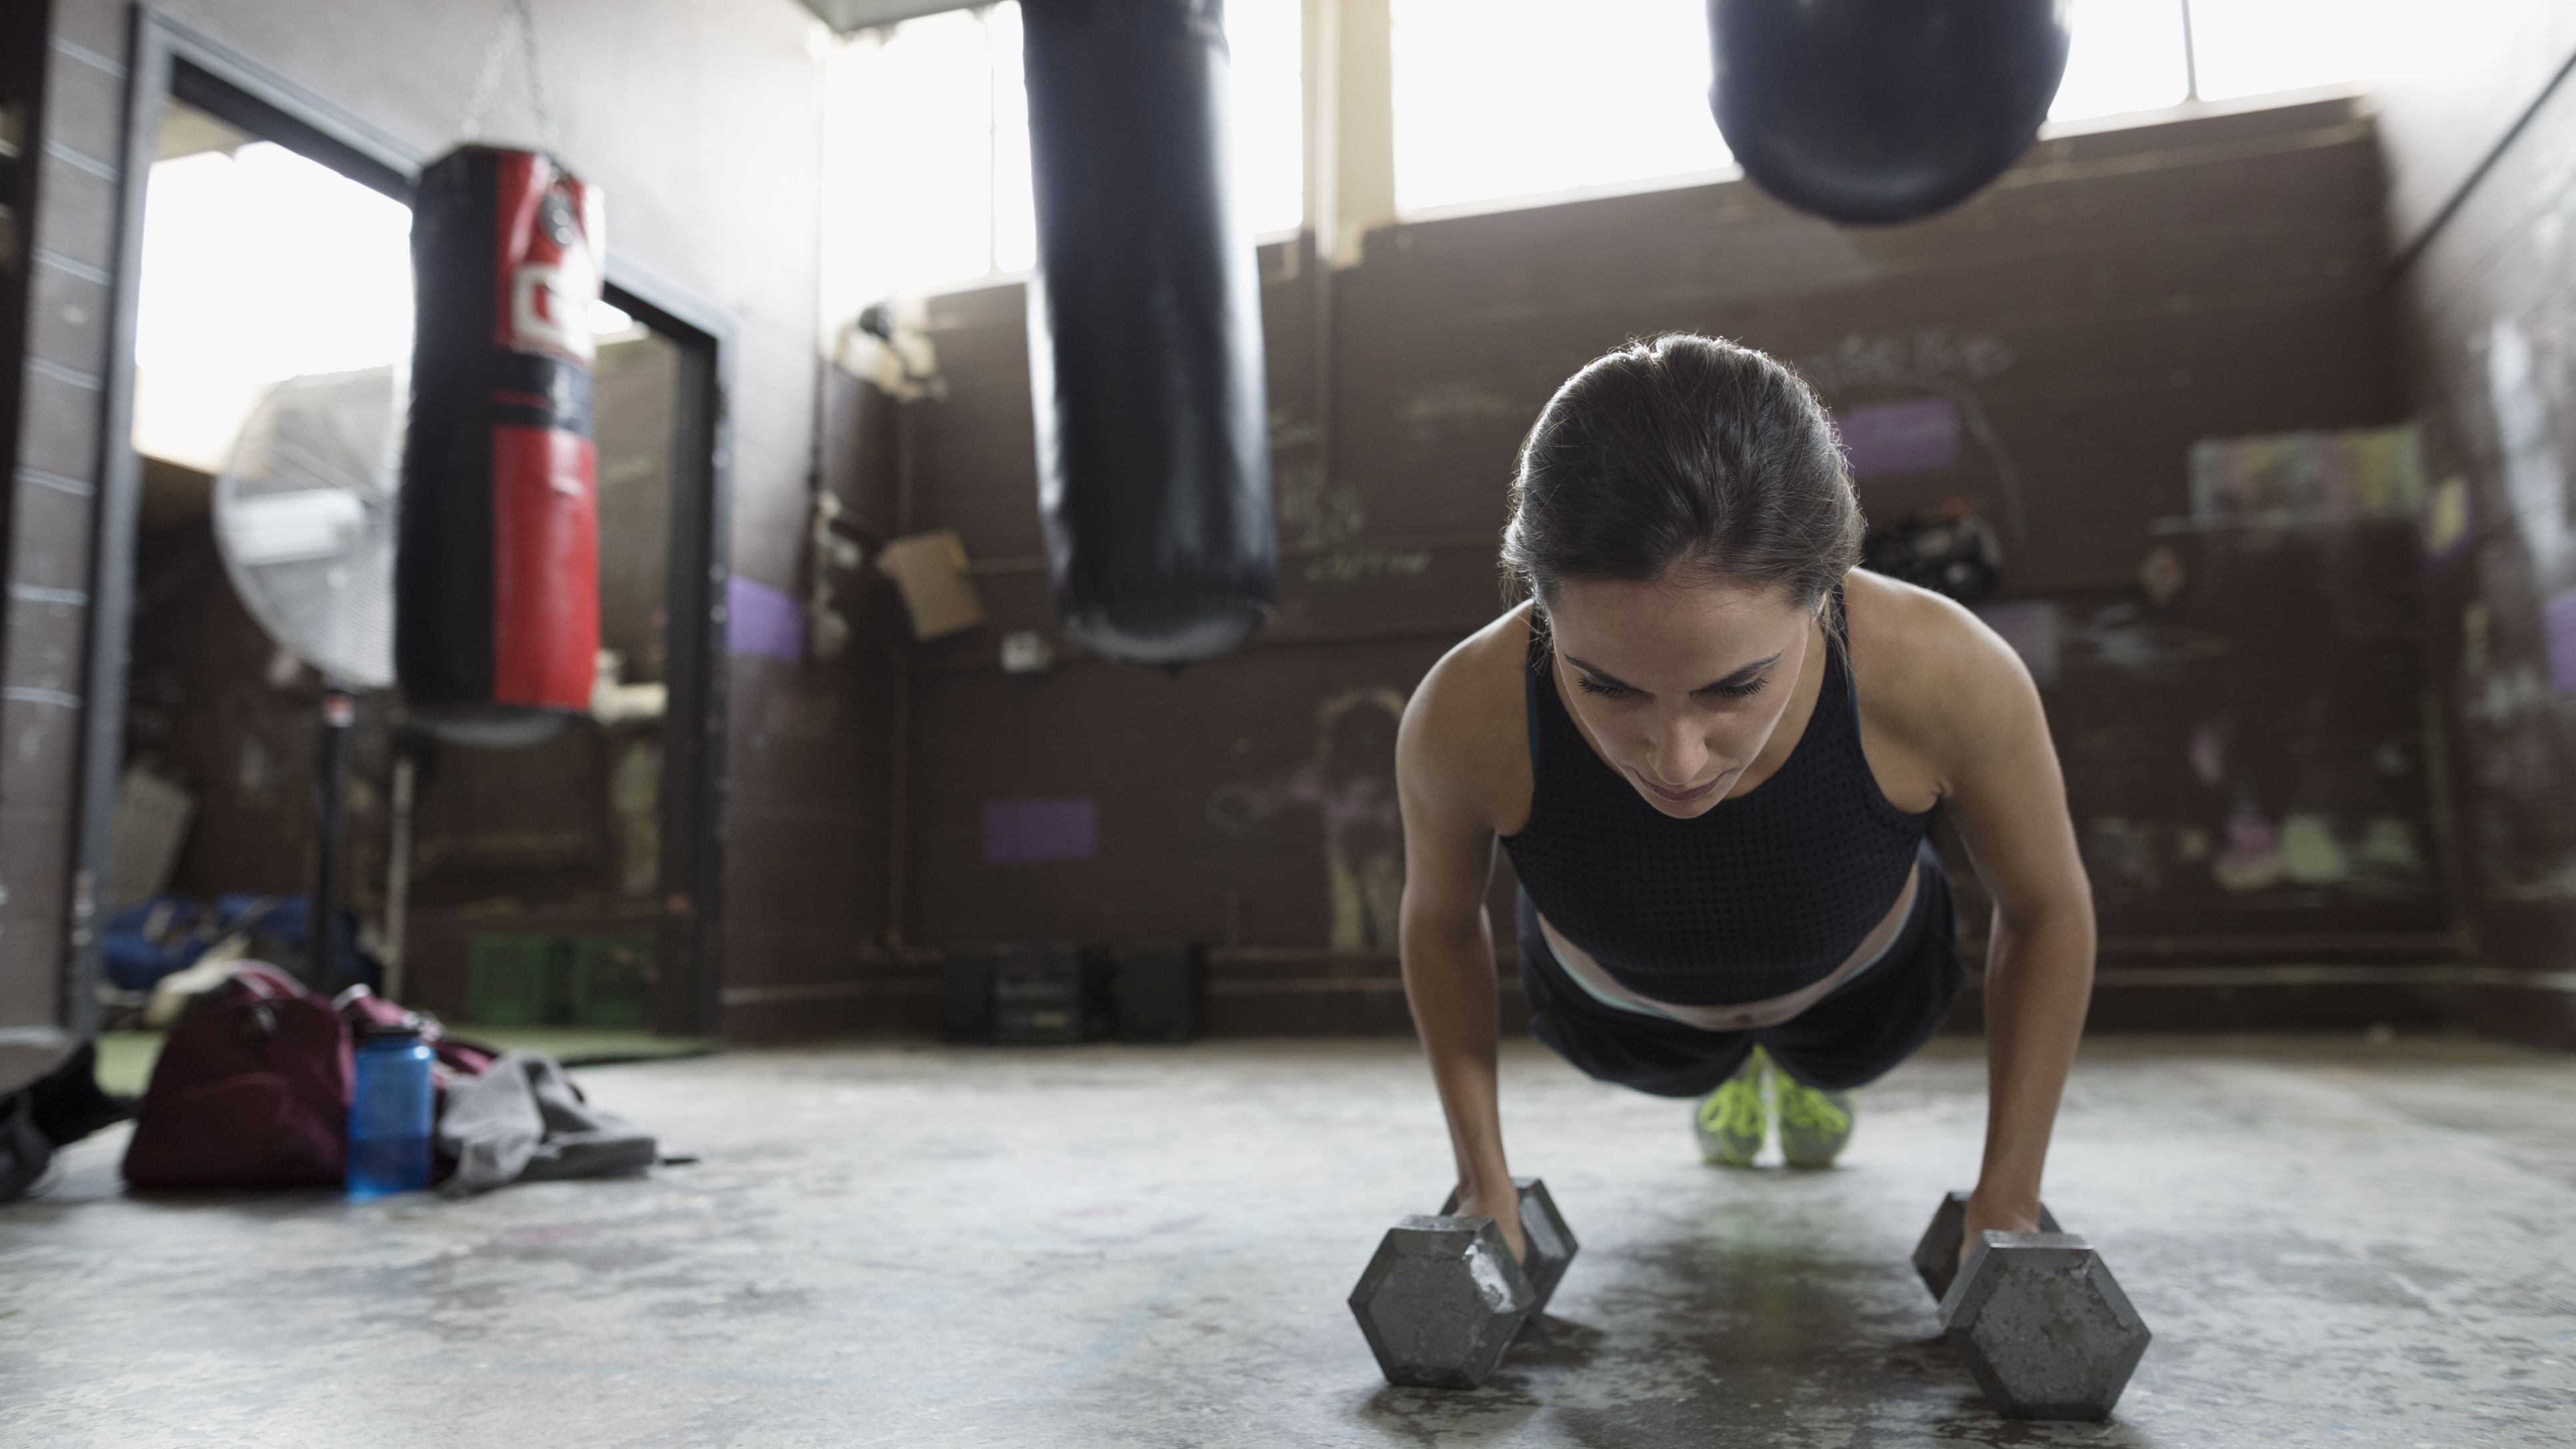 5 Minute Workout Routines To Lose Weight Get Fit